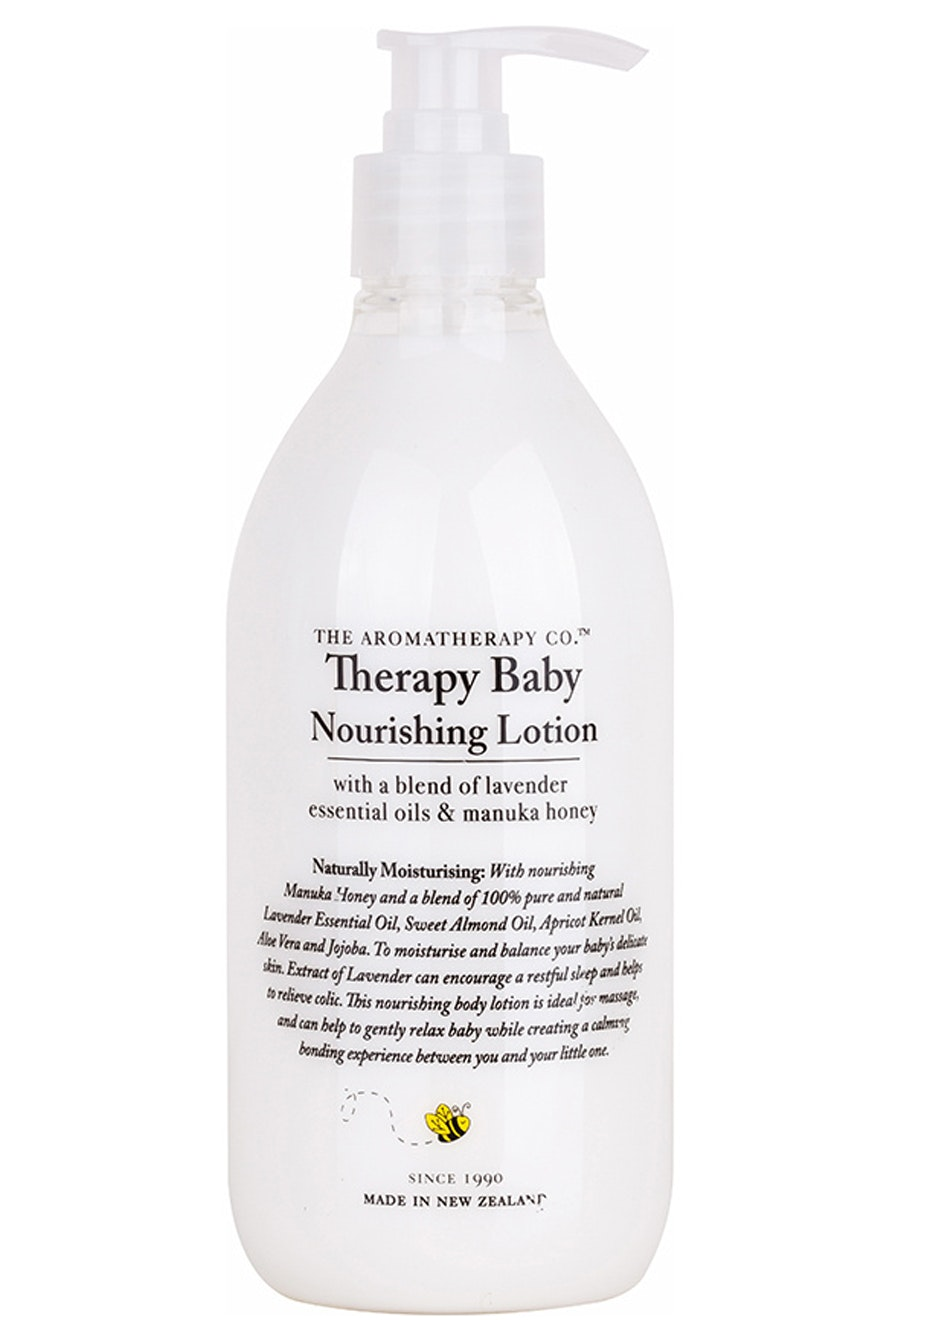 The Aromatherapy Co.  Therapy Baby Nourishing Lotion - Lavender & Essential Oils - 500ml